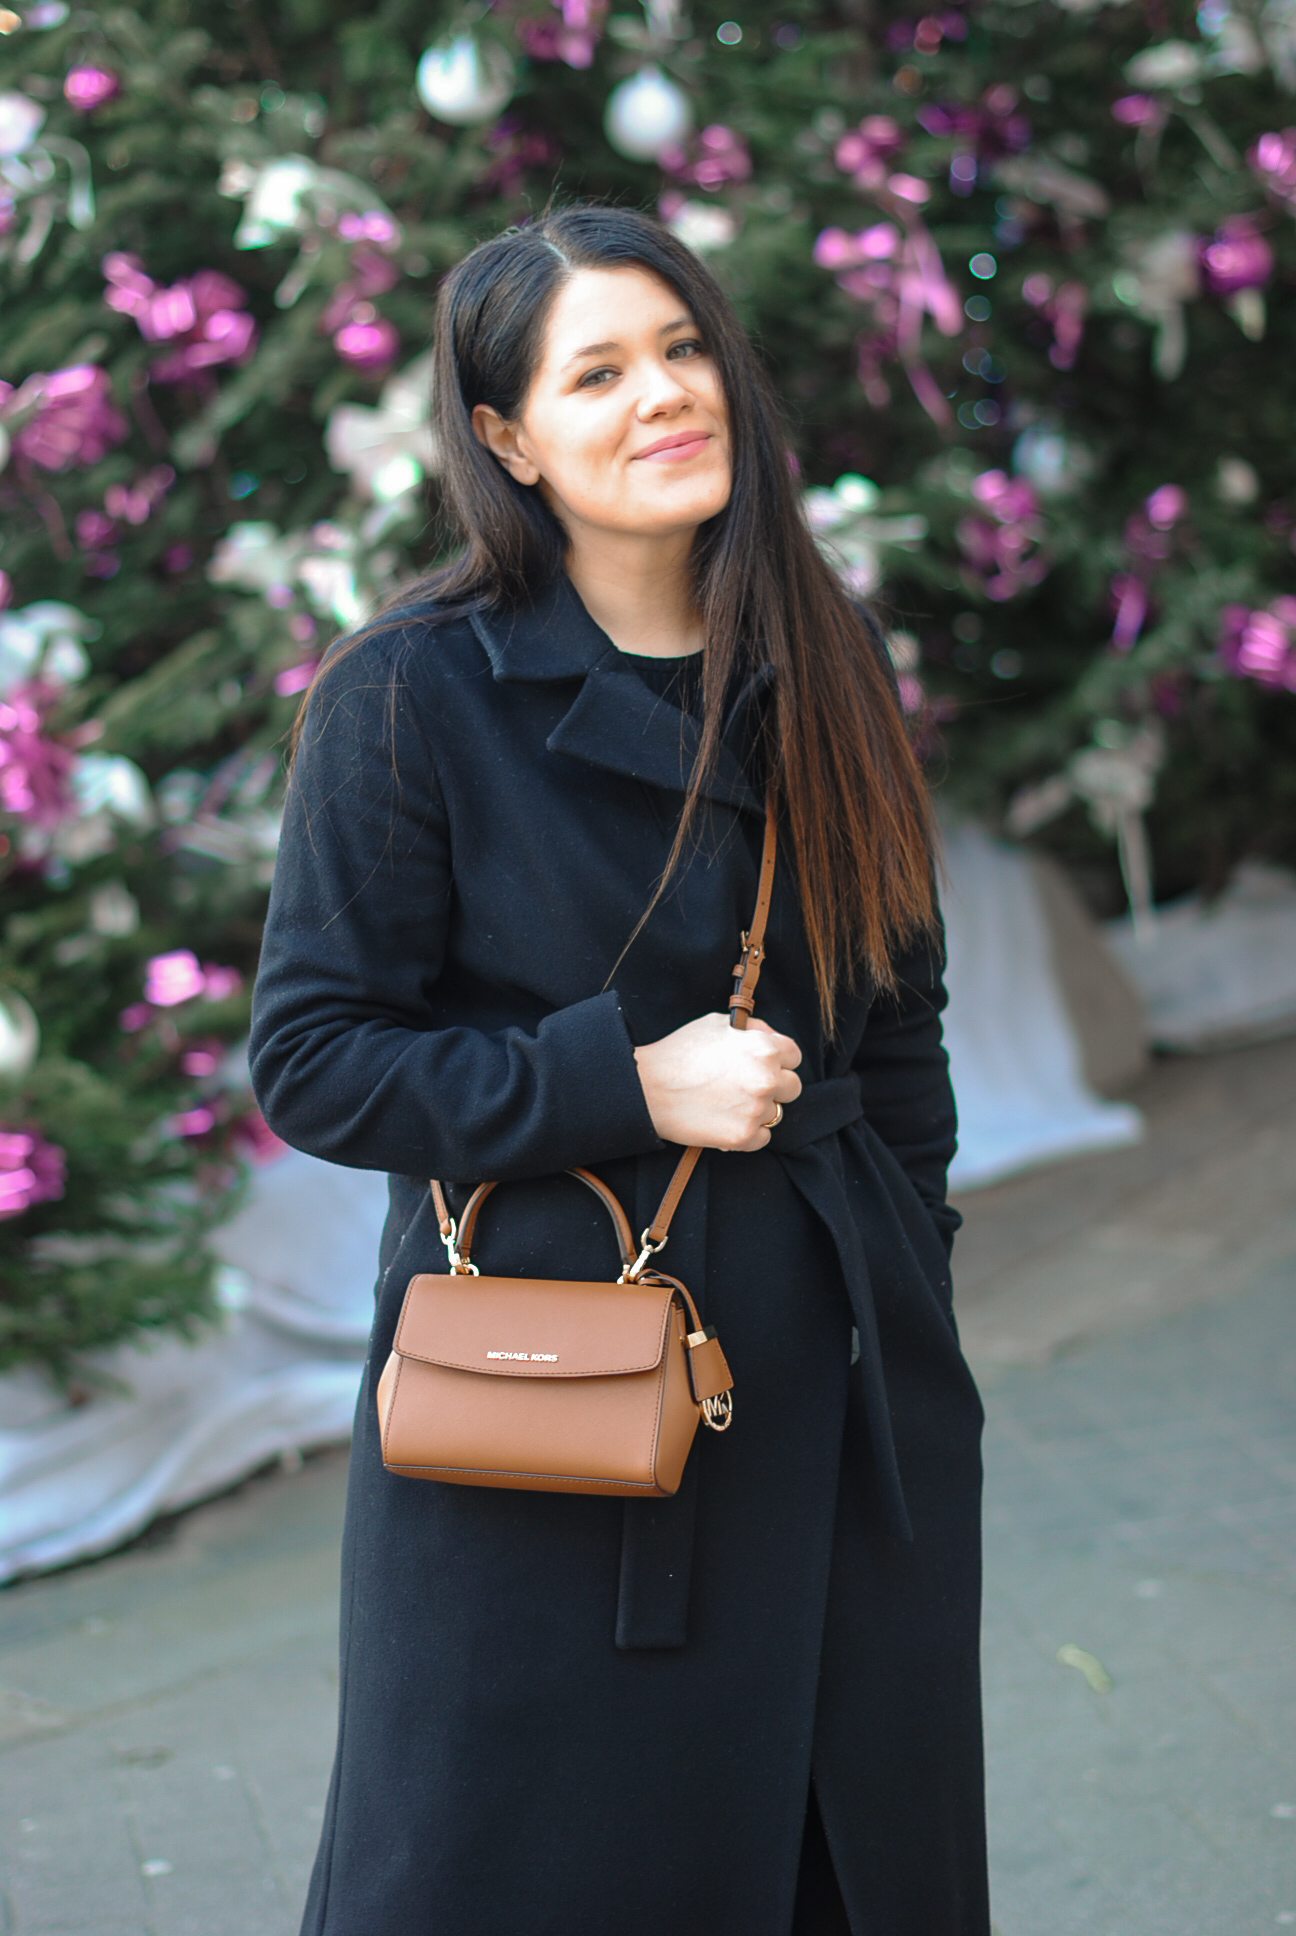 20210110-OUTFIT-BOLSO-MICHAEL KORS-08